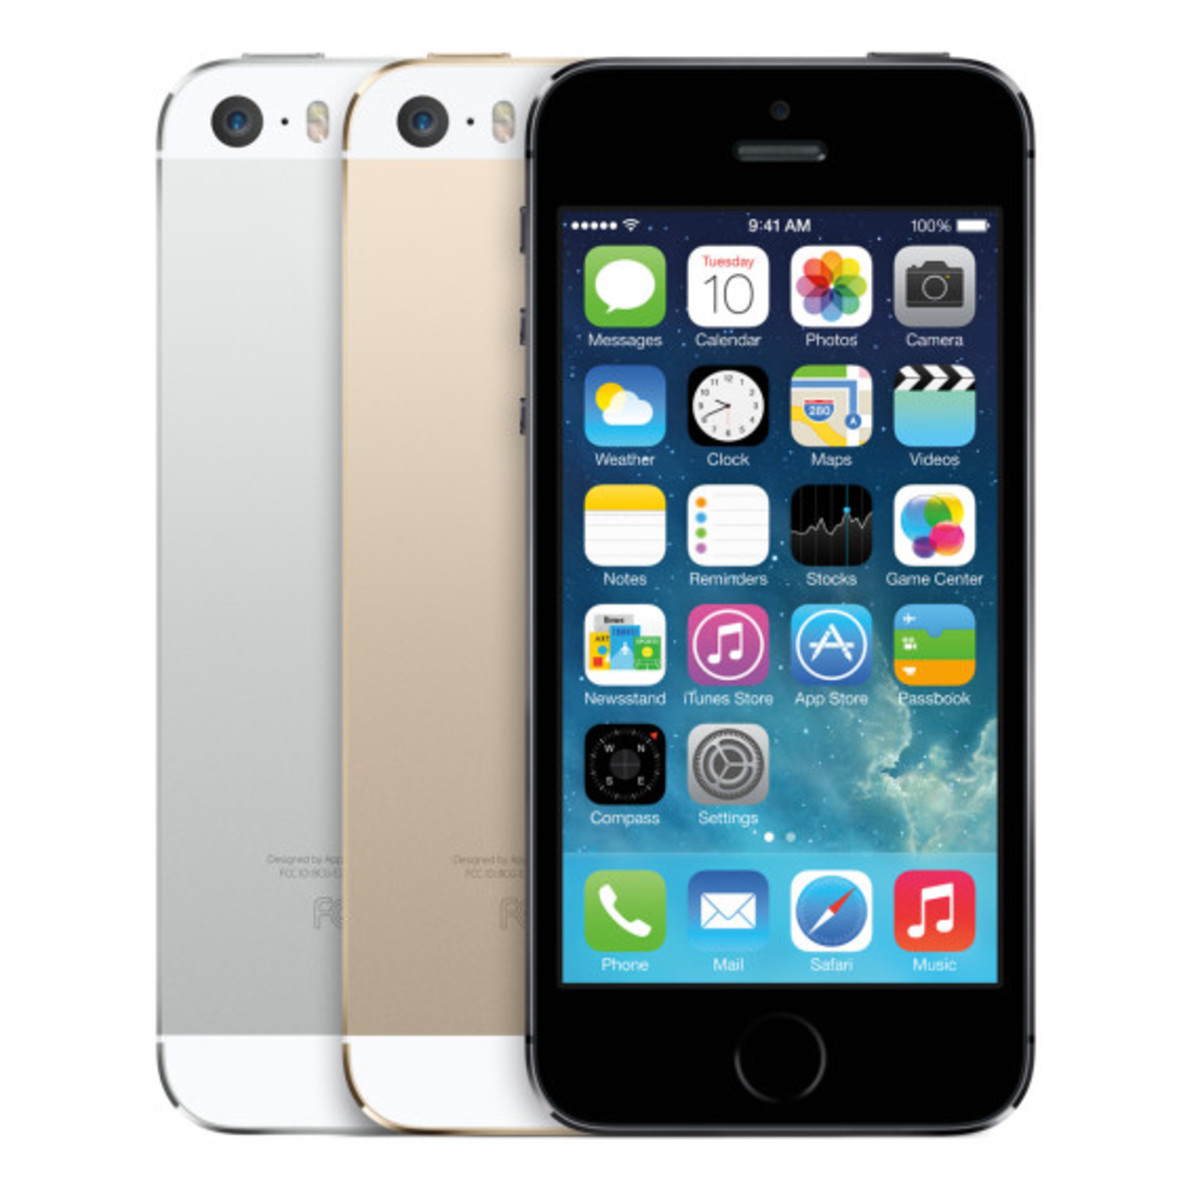 Apple iPhone 5S - Officially Unveiled - 0